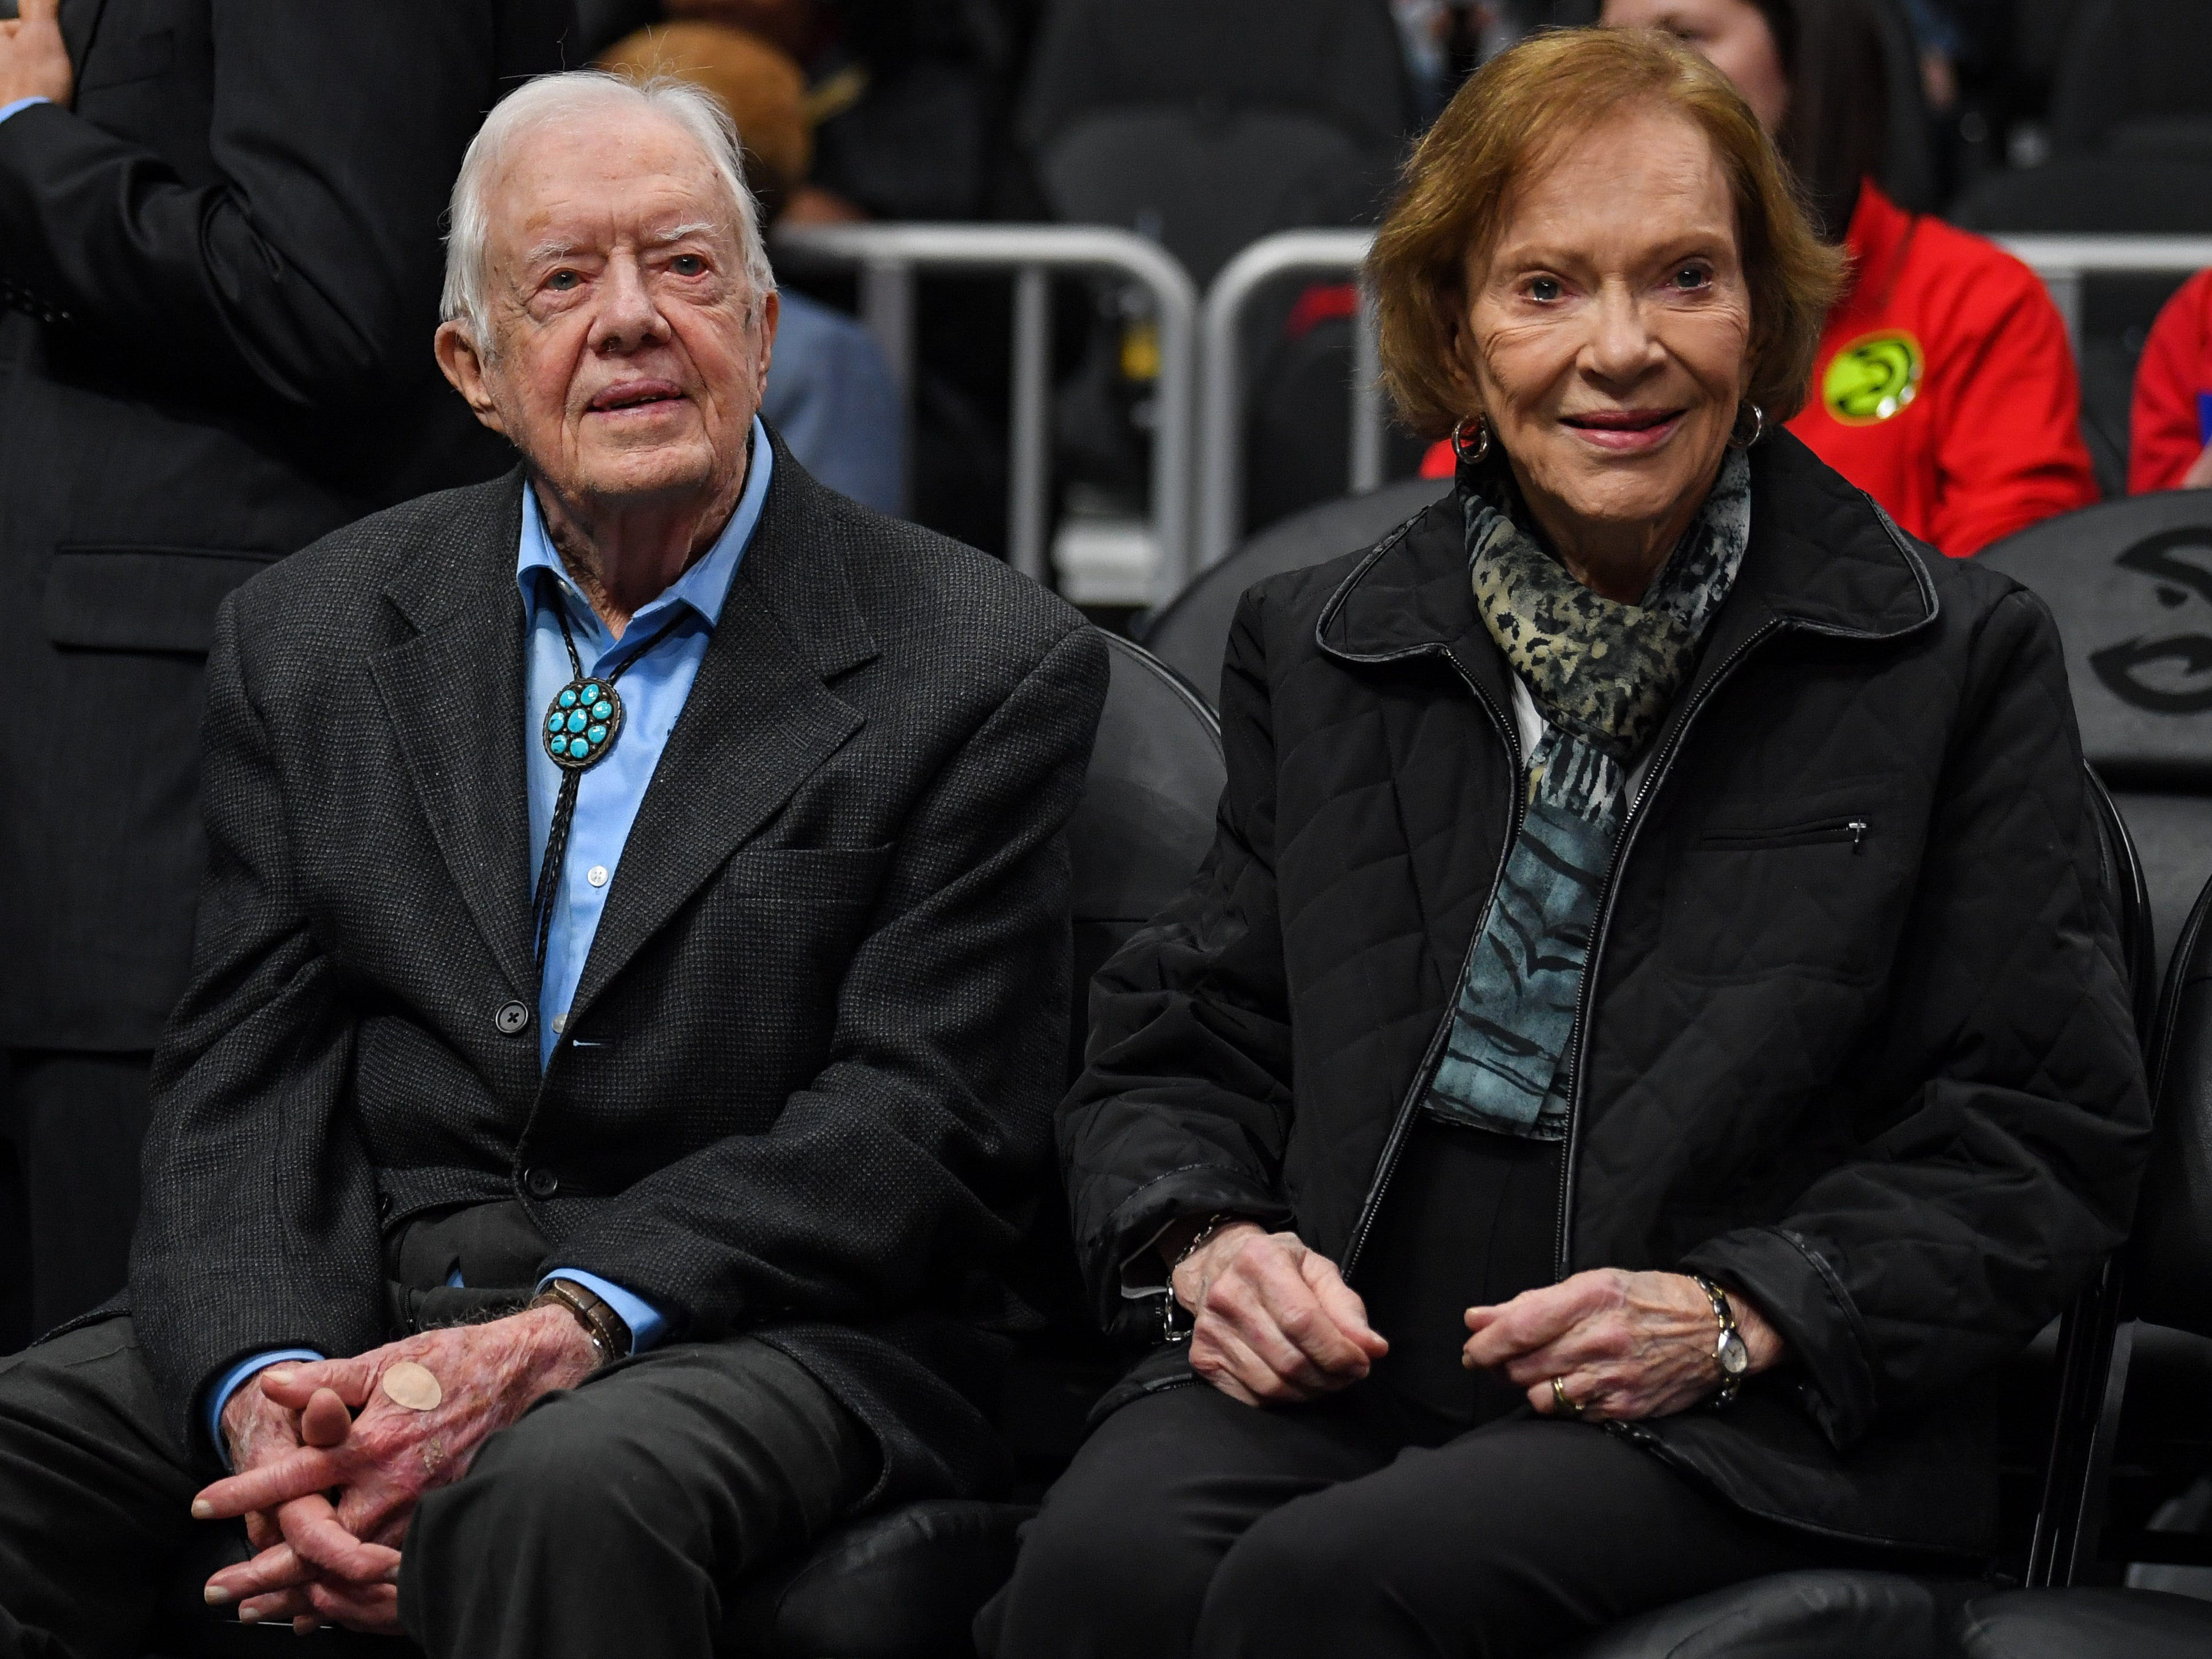 Feb. 14: Former President and First Lady Jimmy and Rosalynn Carter take in the Hawks-Knicks game in Atlanta.